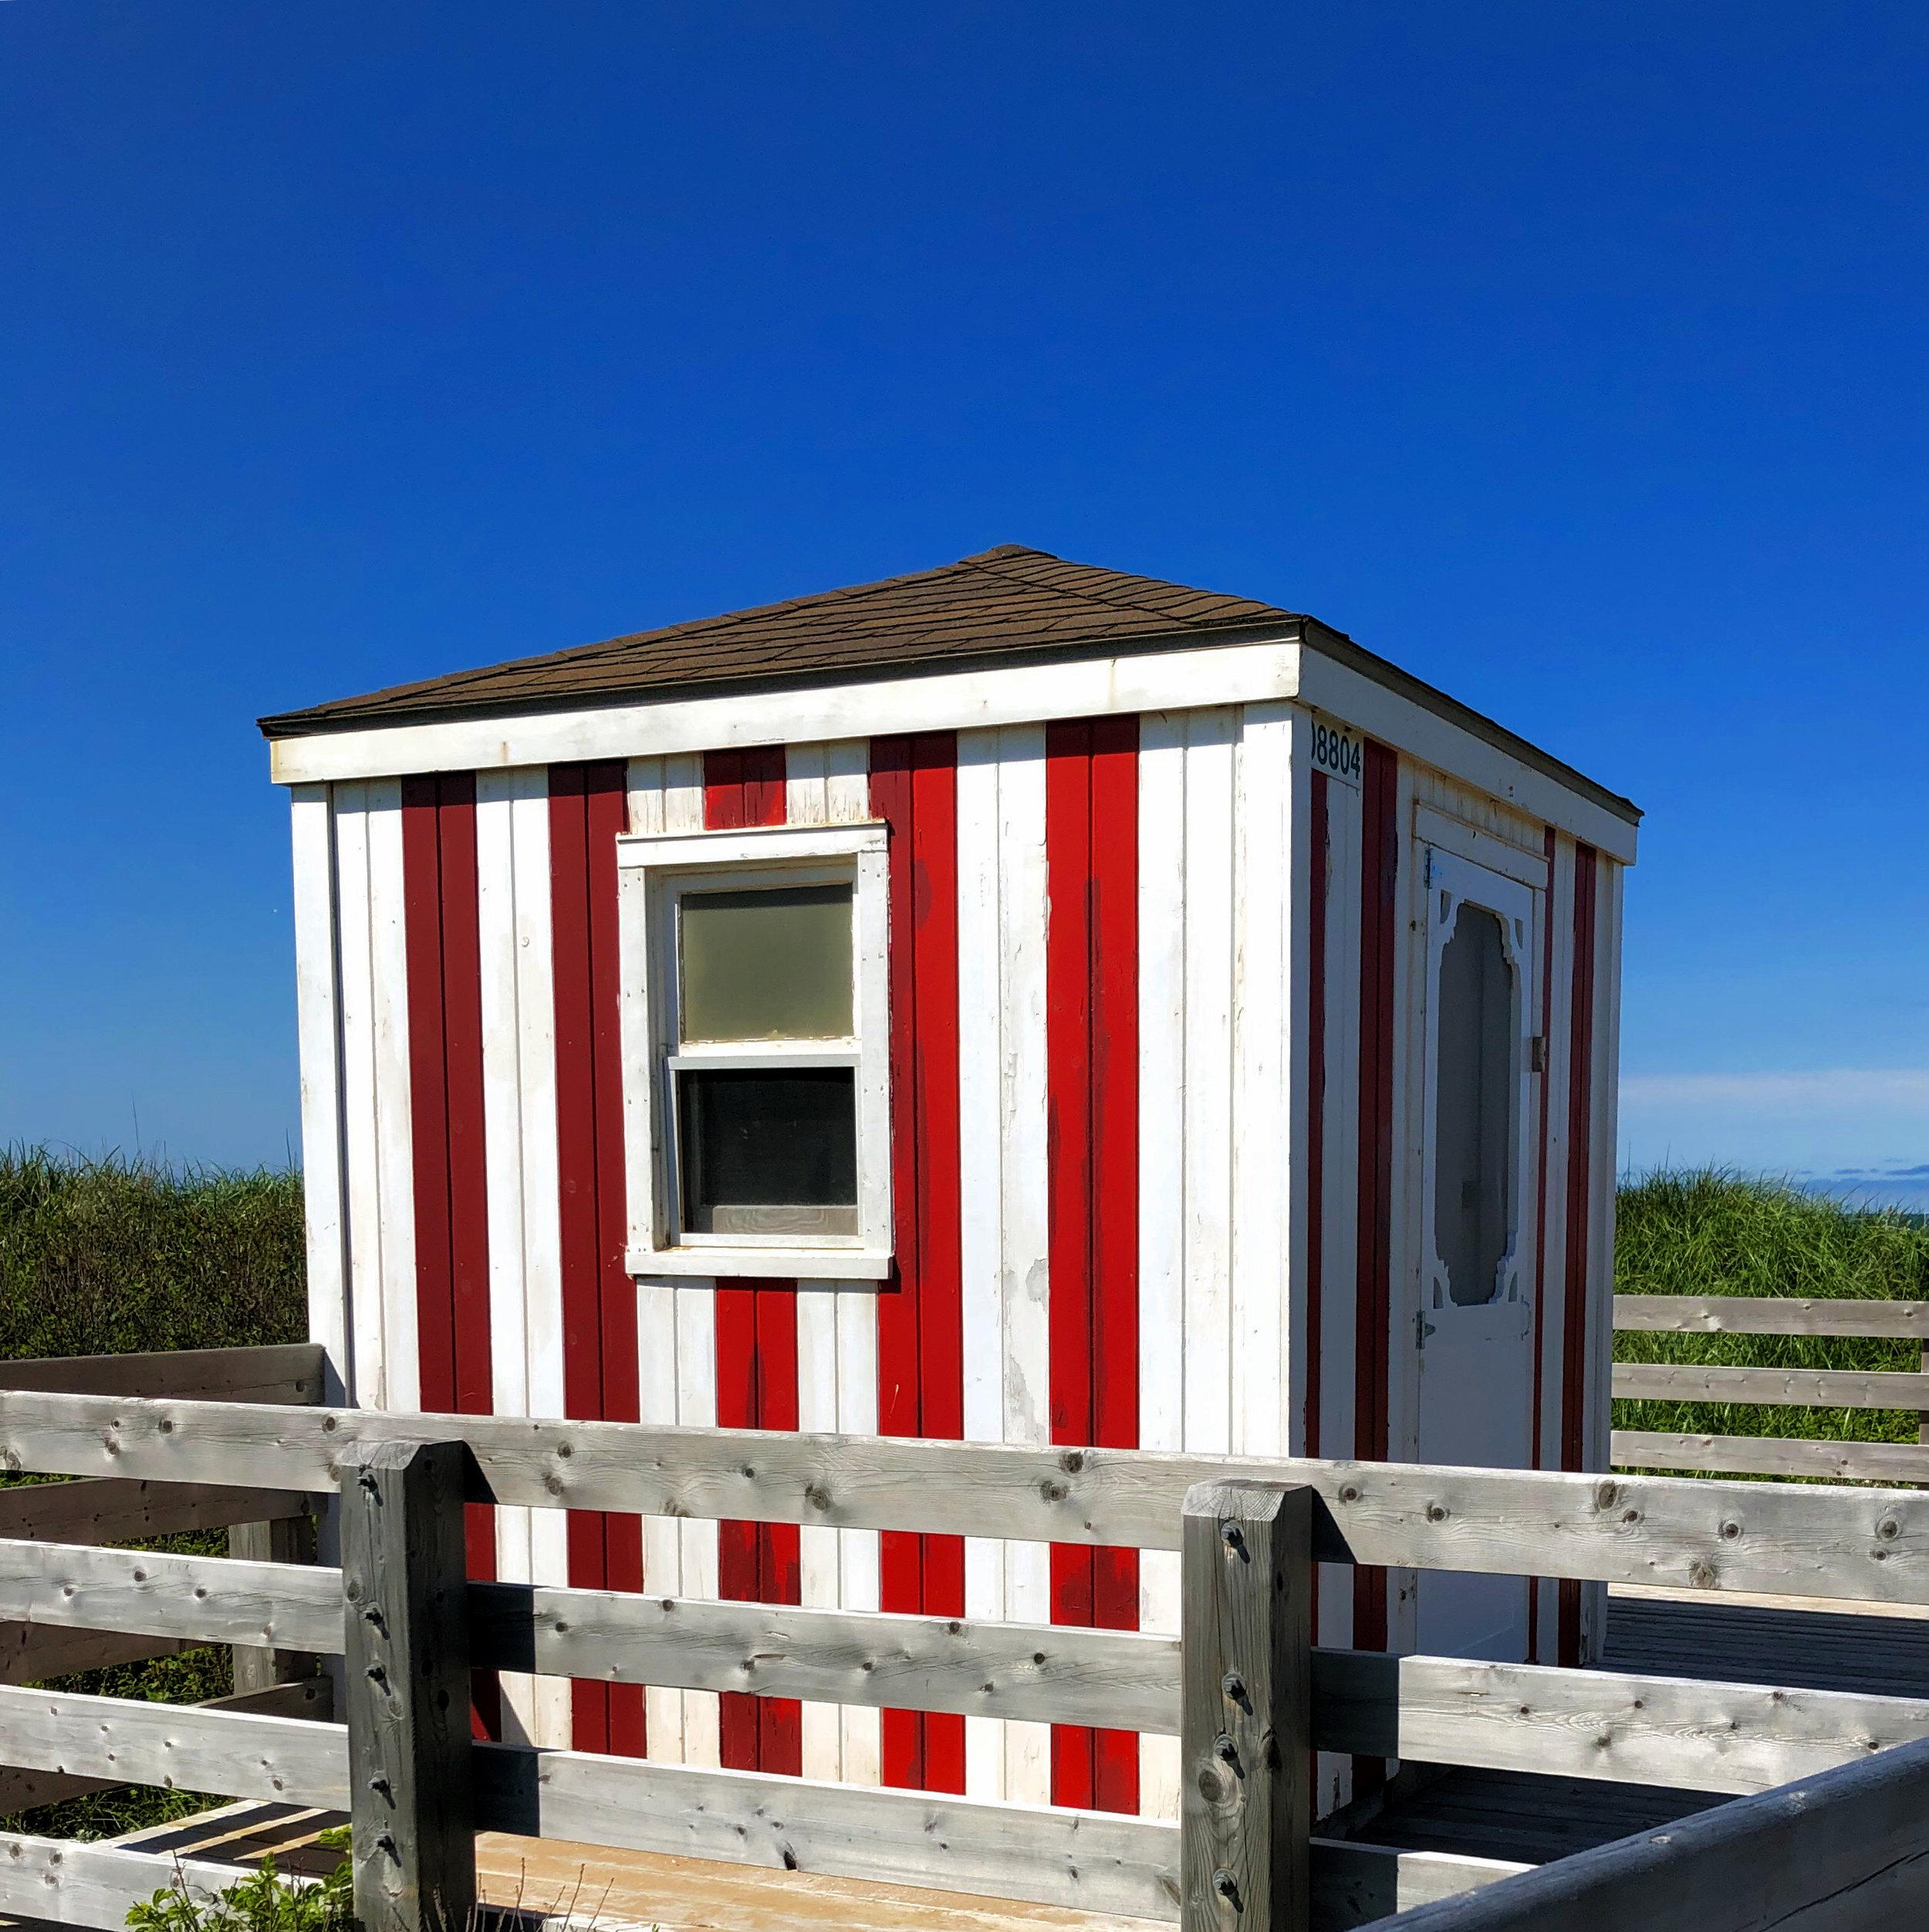 lifeguard-house-on-boardwalk-greenwich-park.jpg